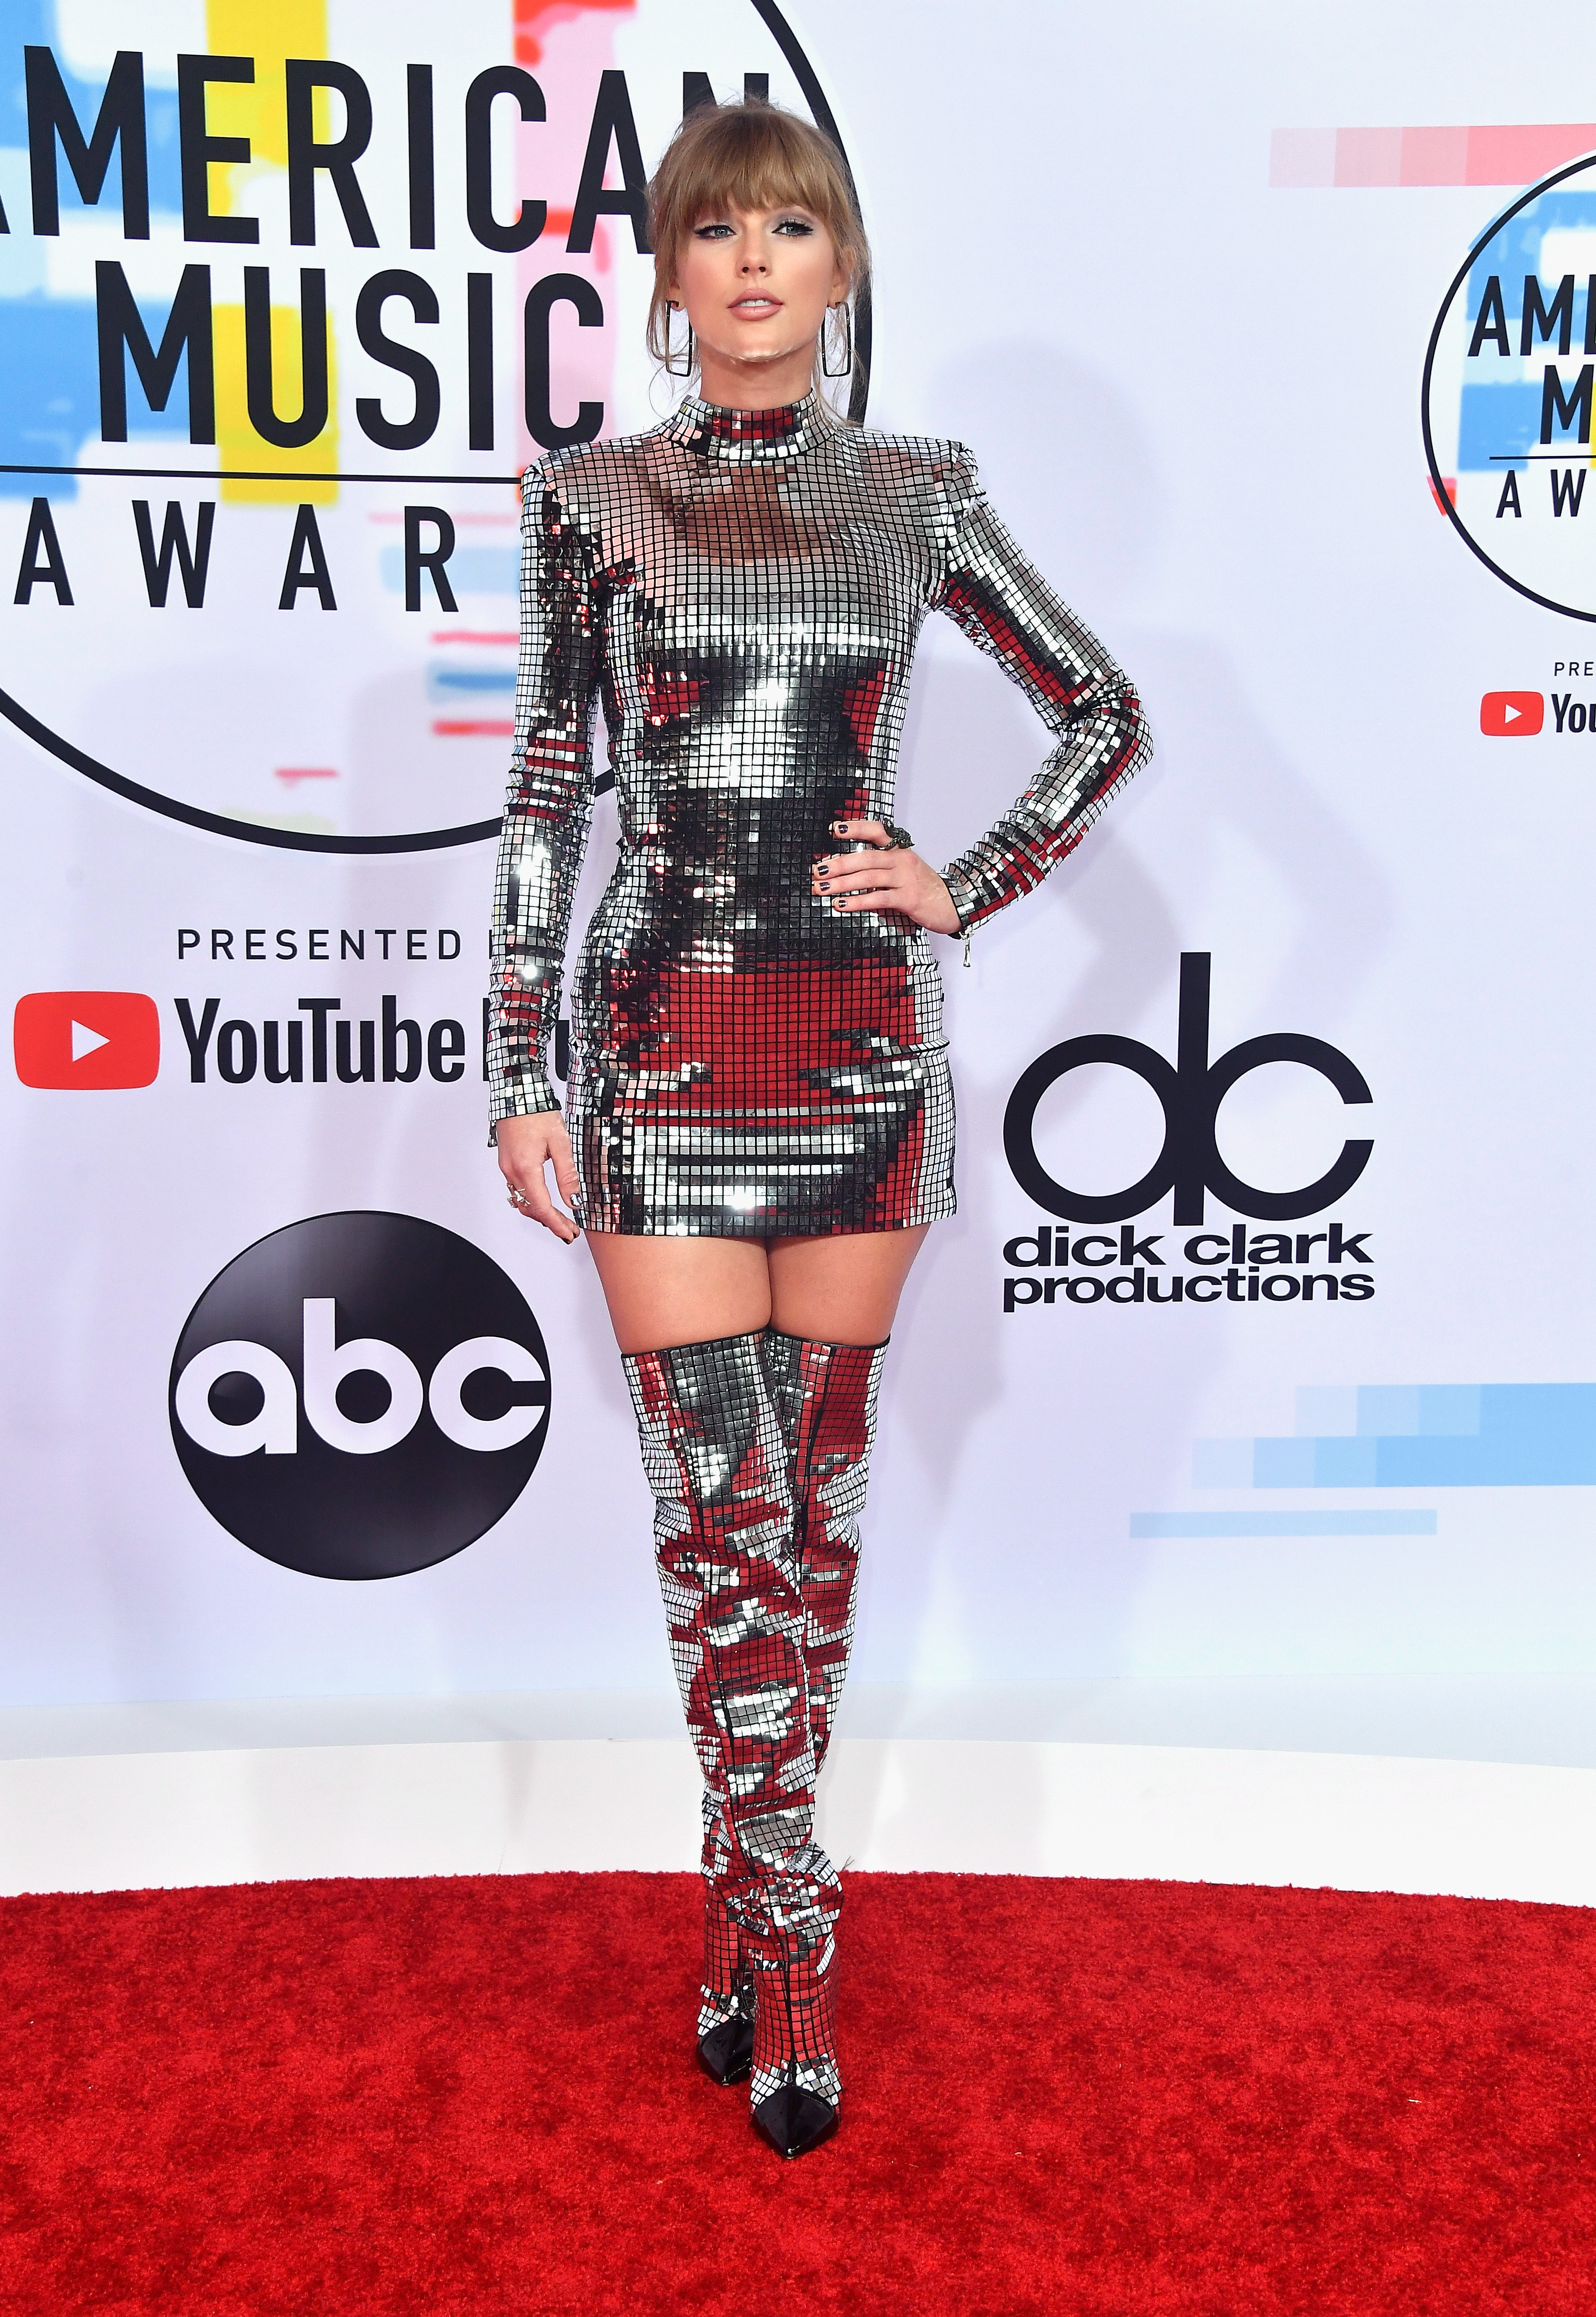 Taylor-Swift-attends-the-2018-American-Music-Awards-at-Microsoft-Theater-on-October-9-2018-in-Los-Angeles